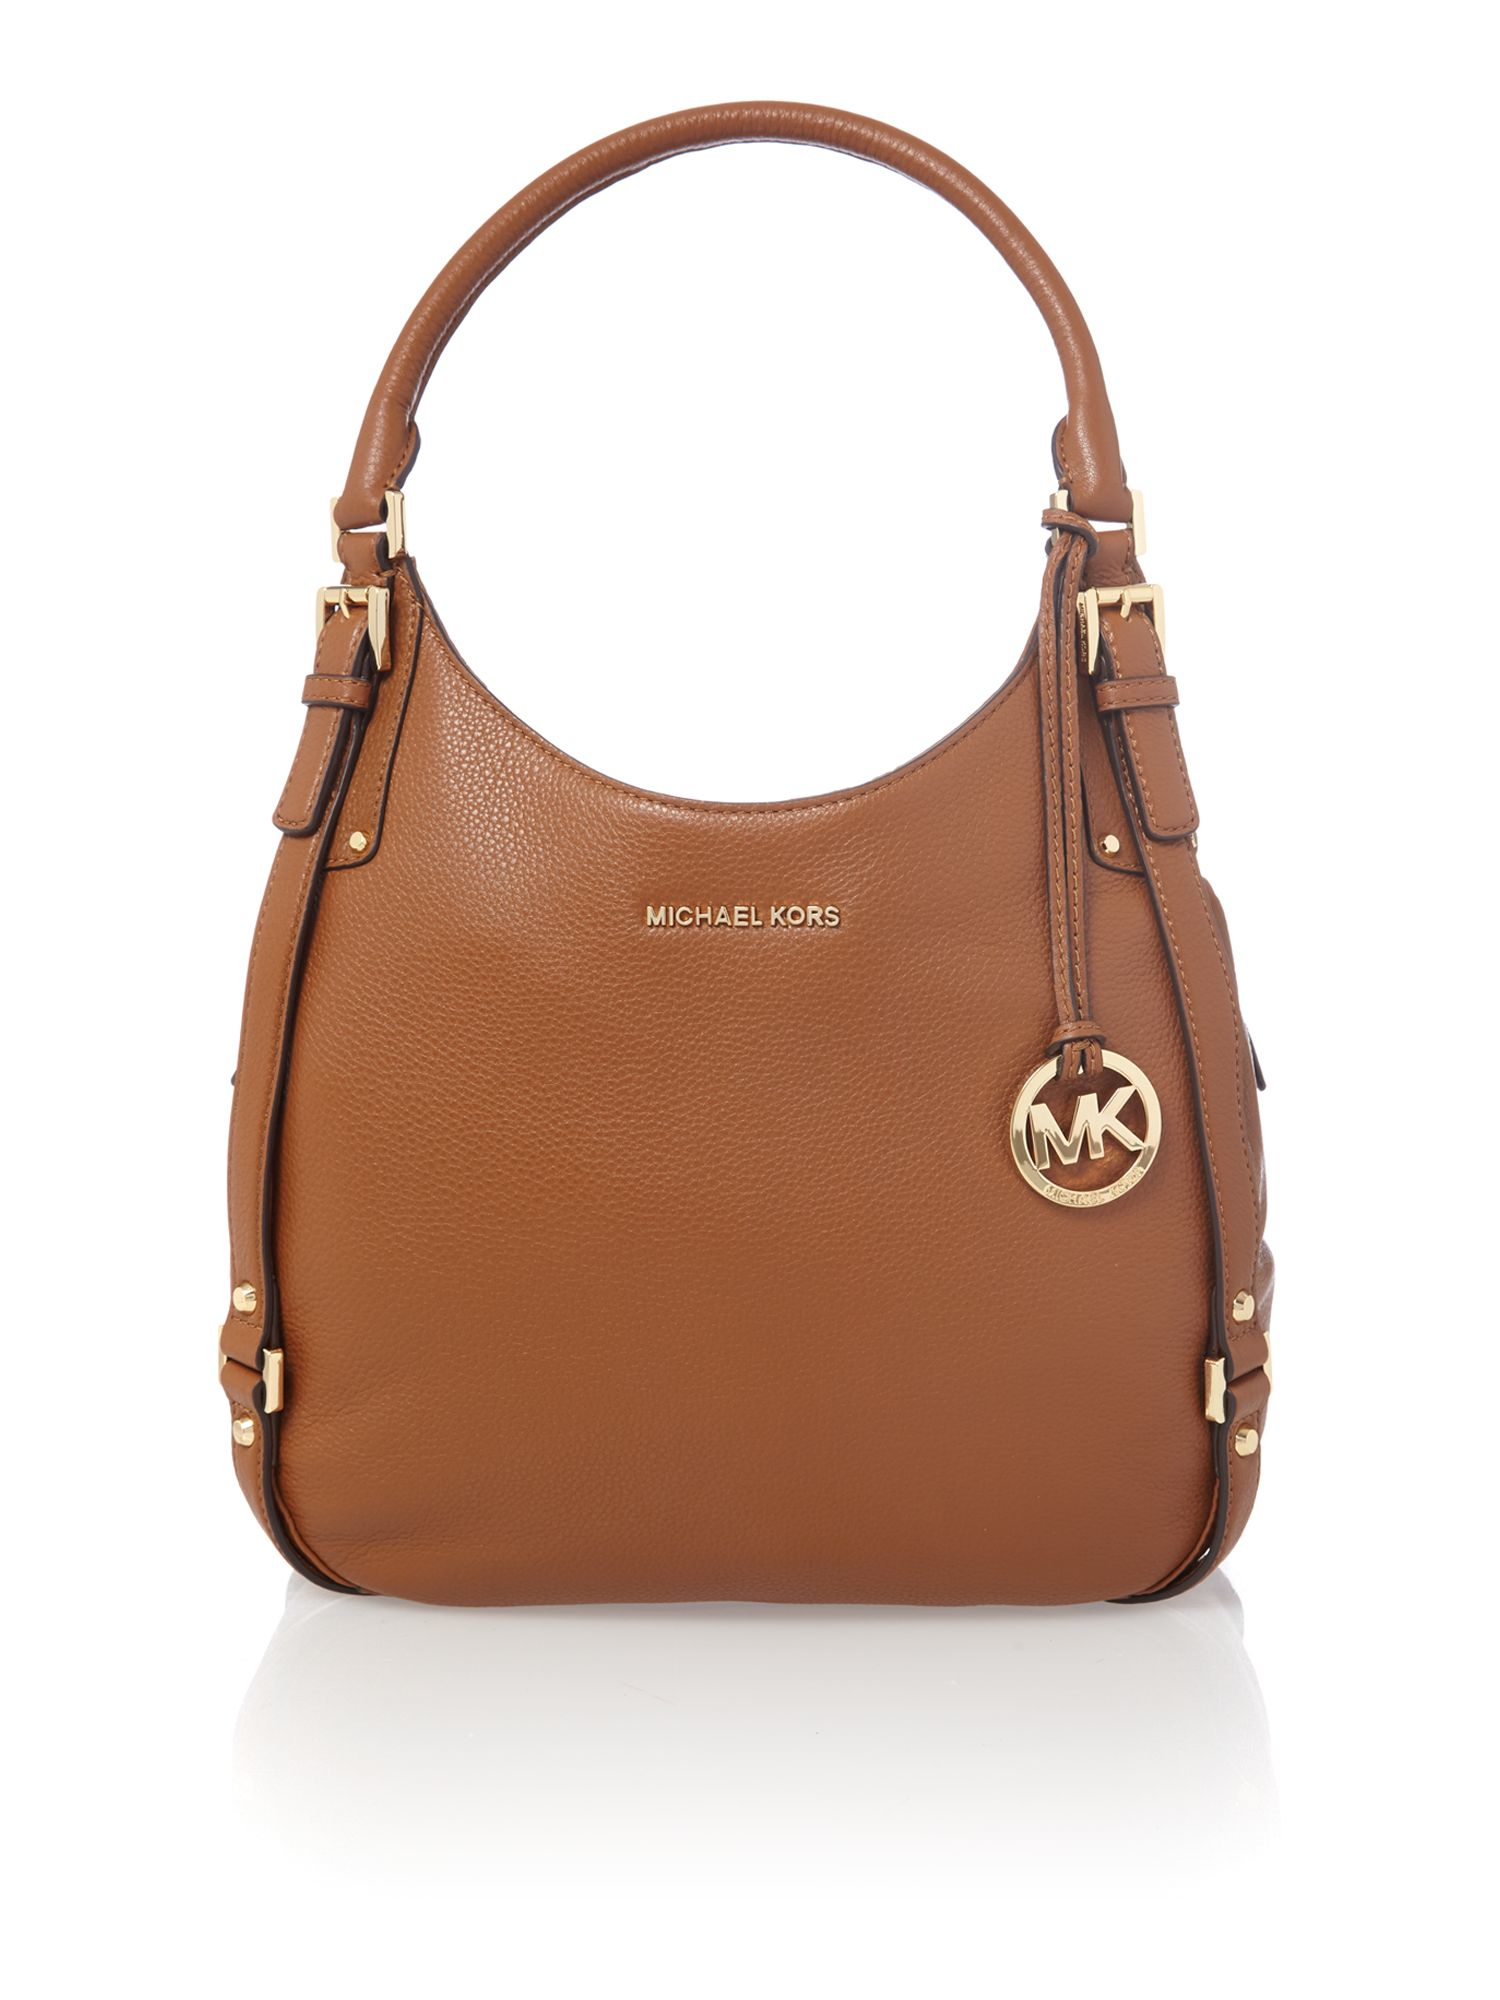 8476fe6f9594 Michael Kors Bedford Hobo Bag in Brown - Lyst ...